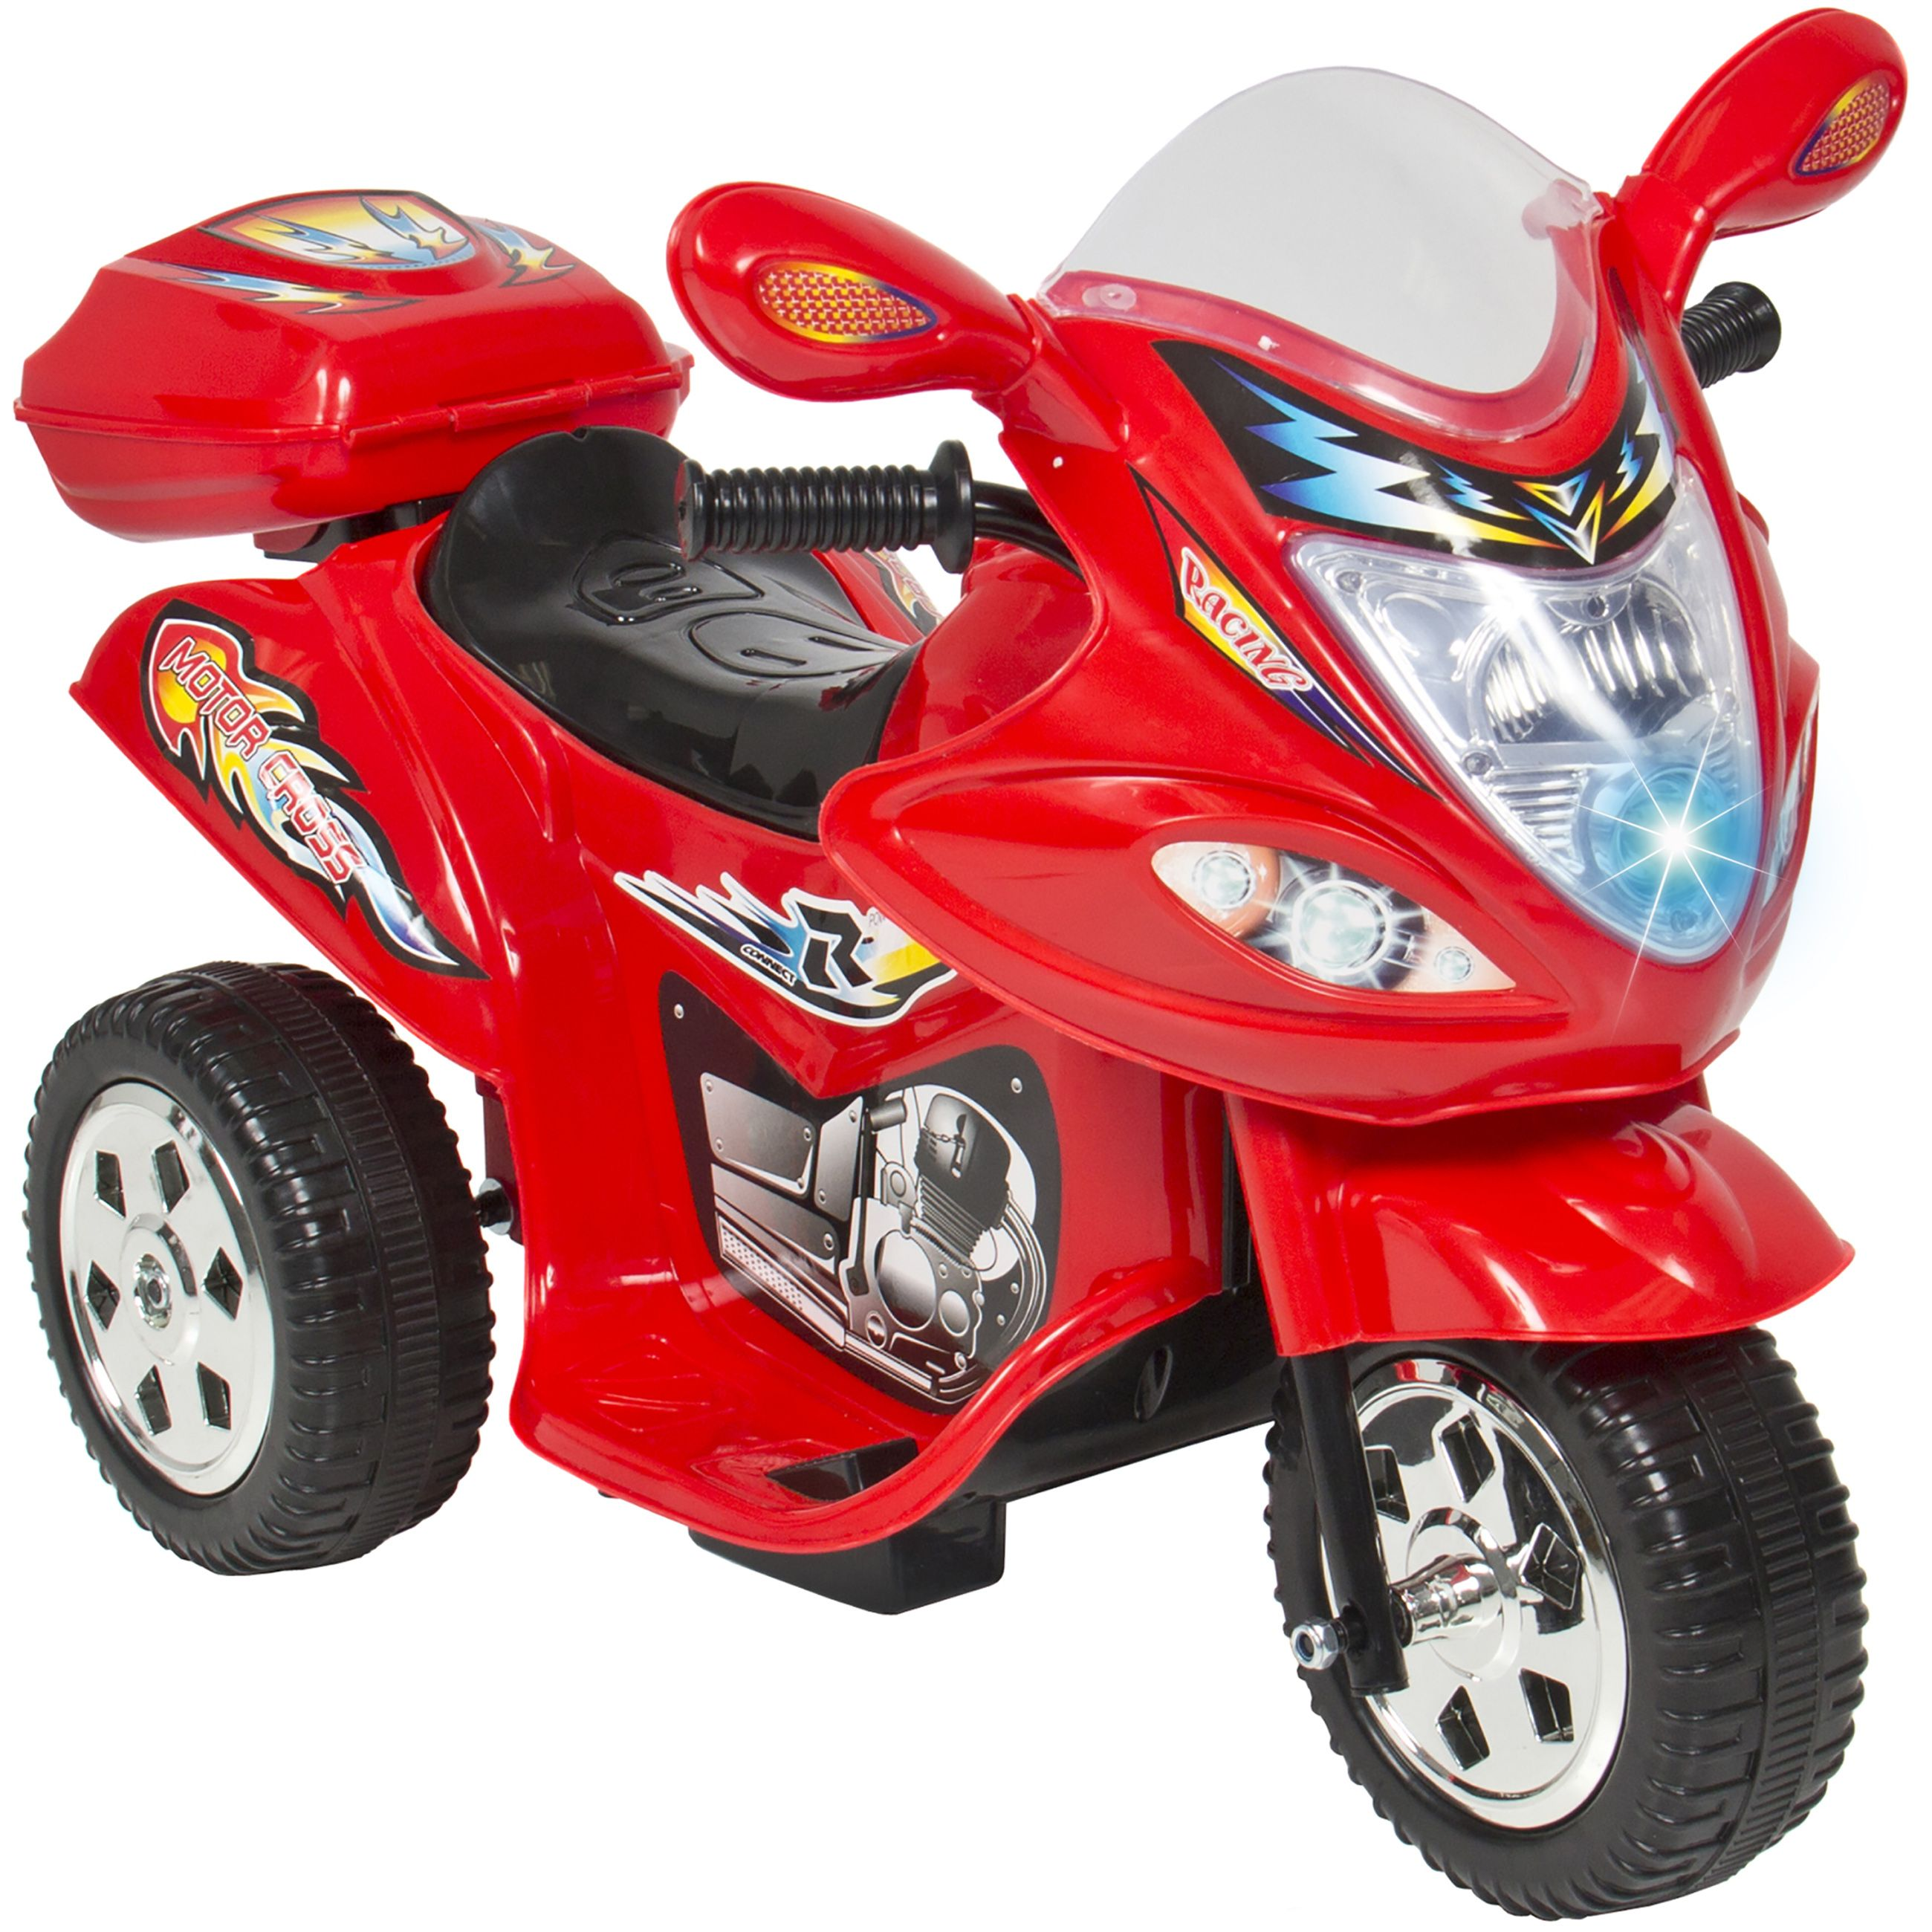 Kids Ride Motorcycle 6V Toy Battery Powered Electric 3 Wheel